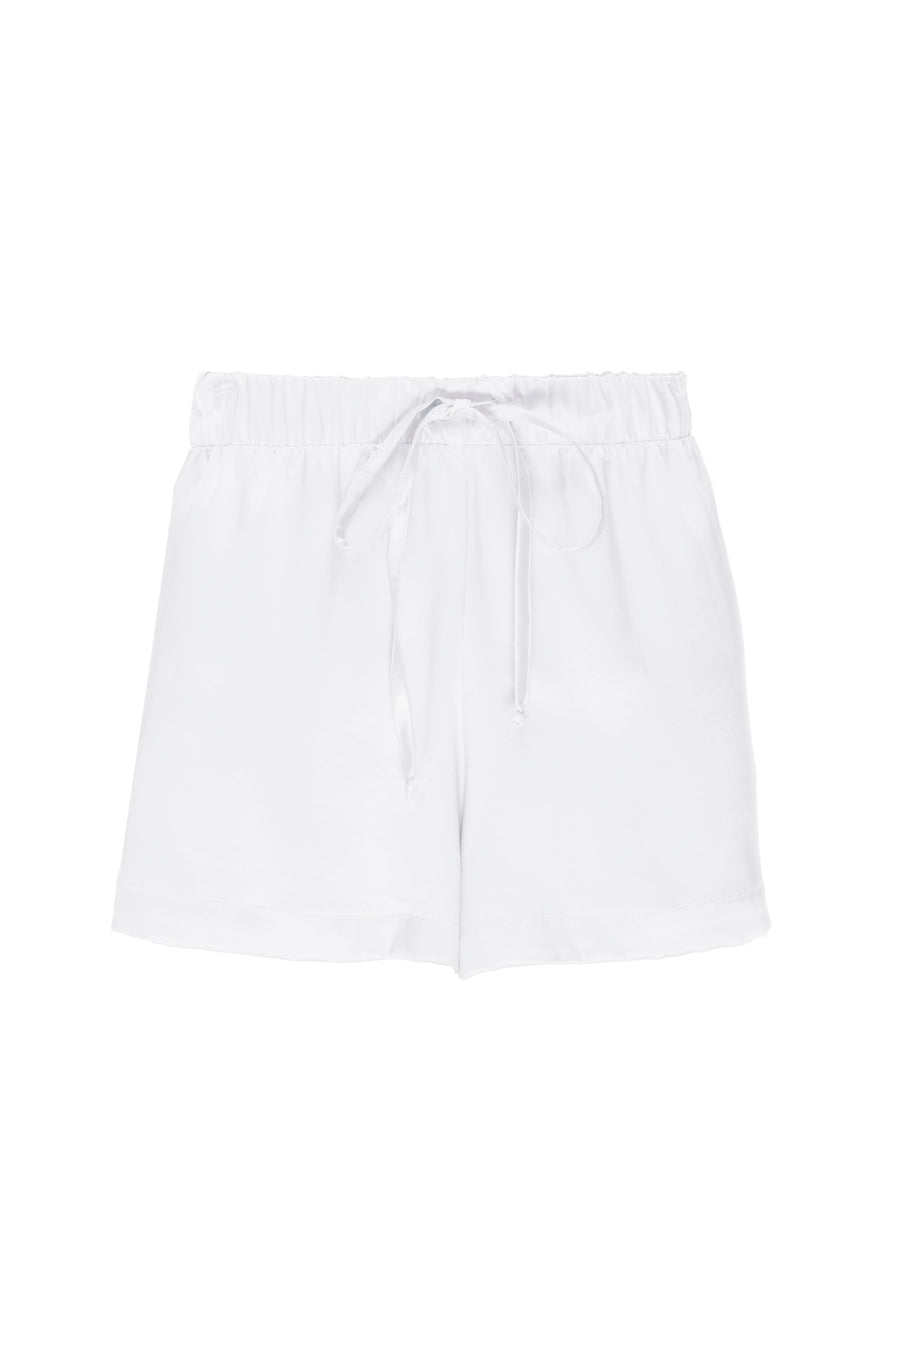 Silk Charmeuse Shorts:  Ivory